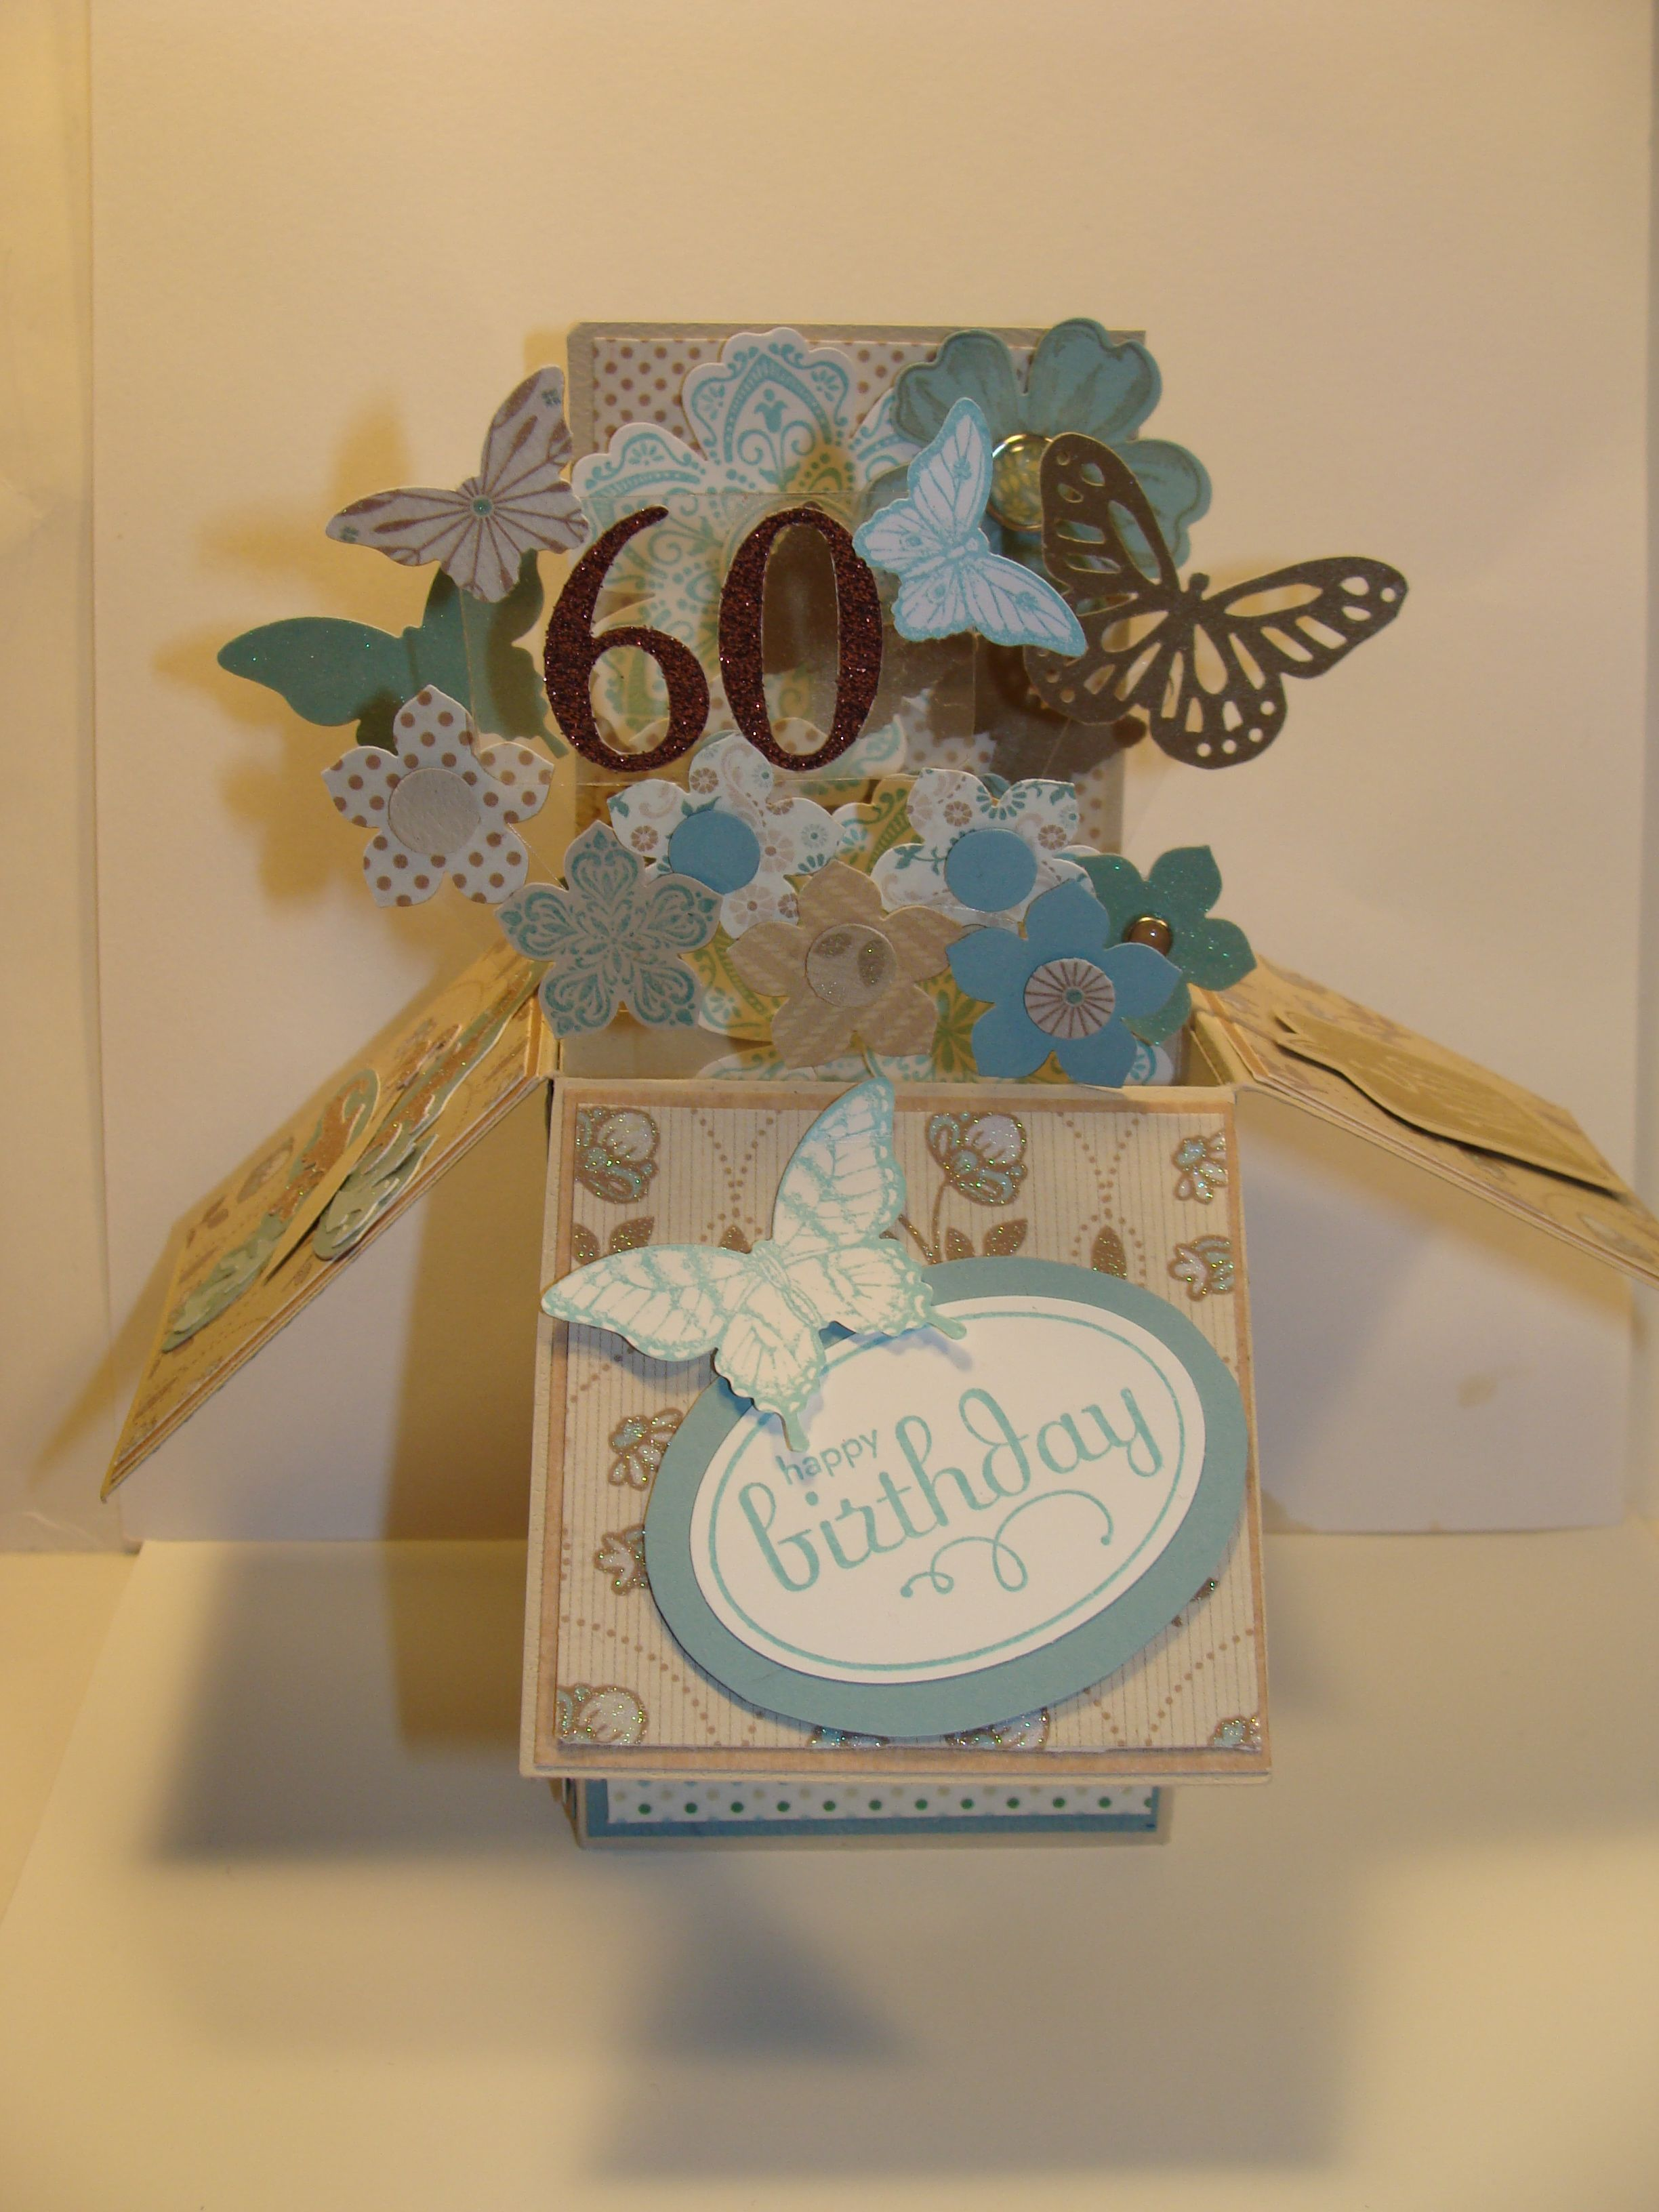 60th Birthday Card For My Friend Jan